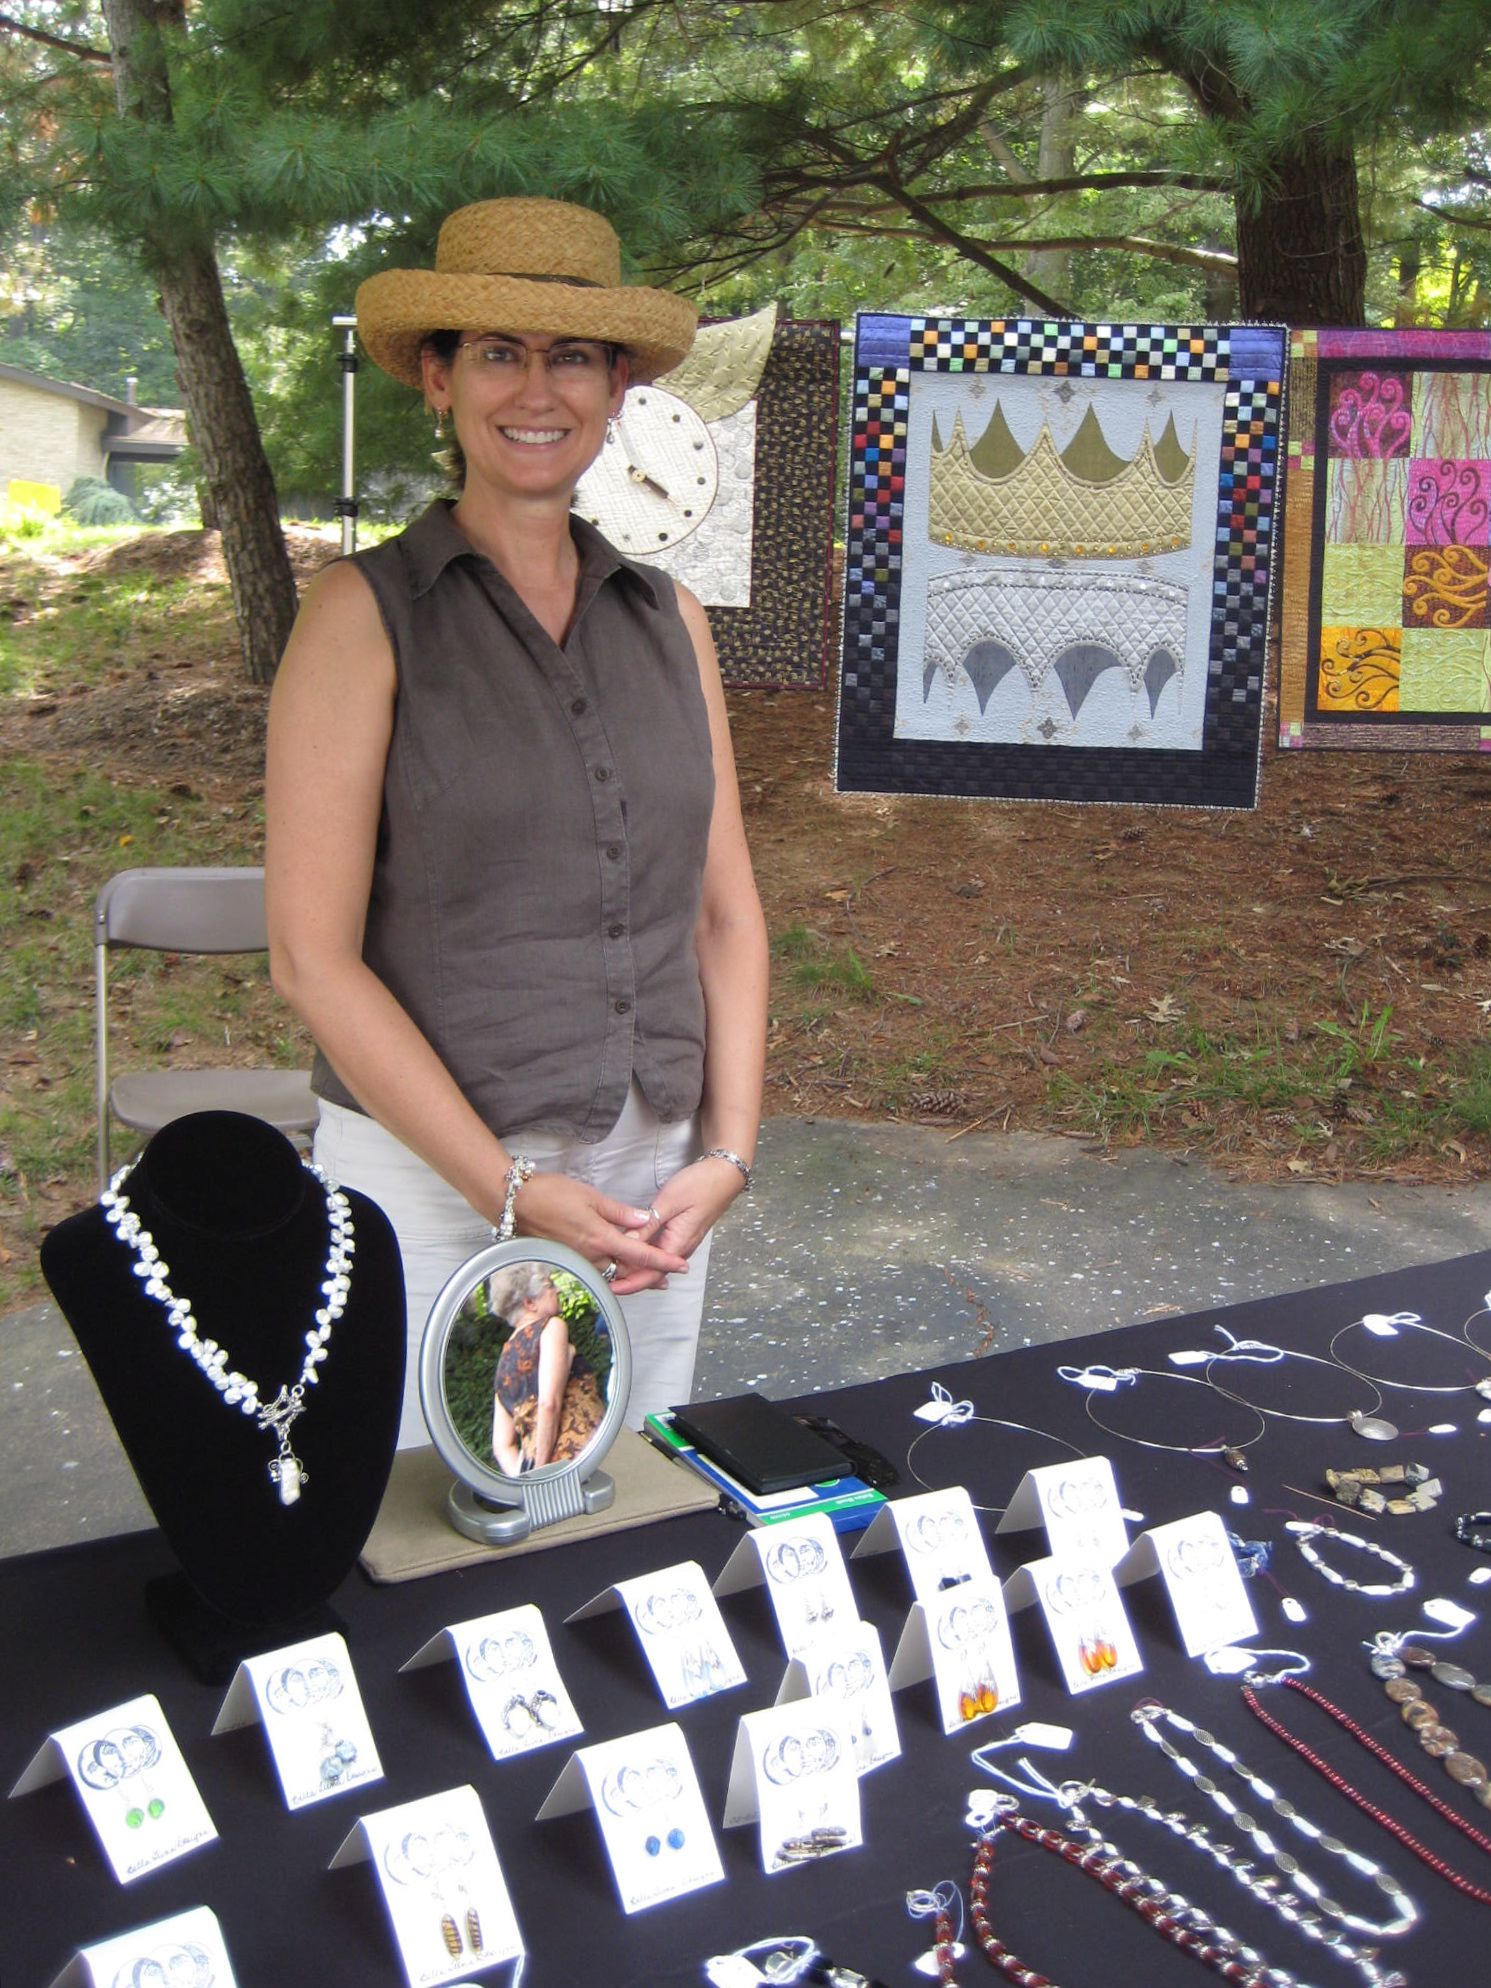 Me at Art in the Park 2008